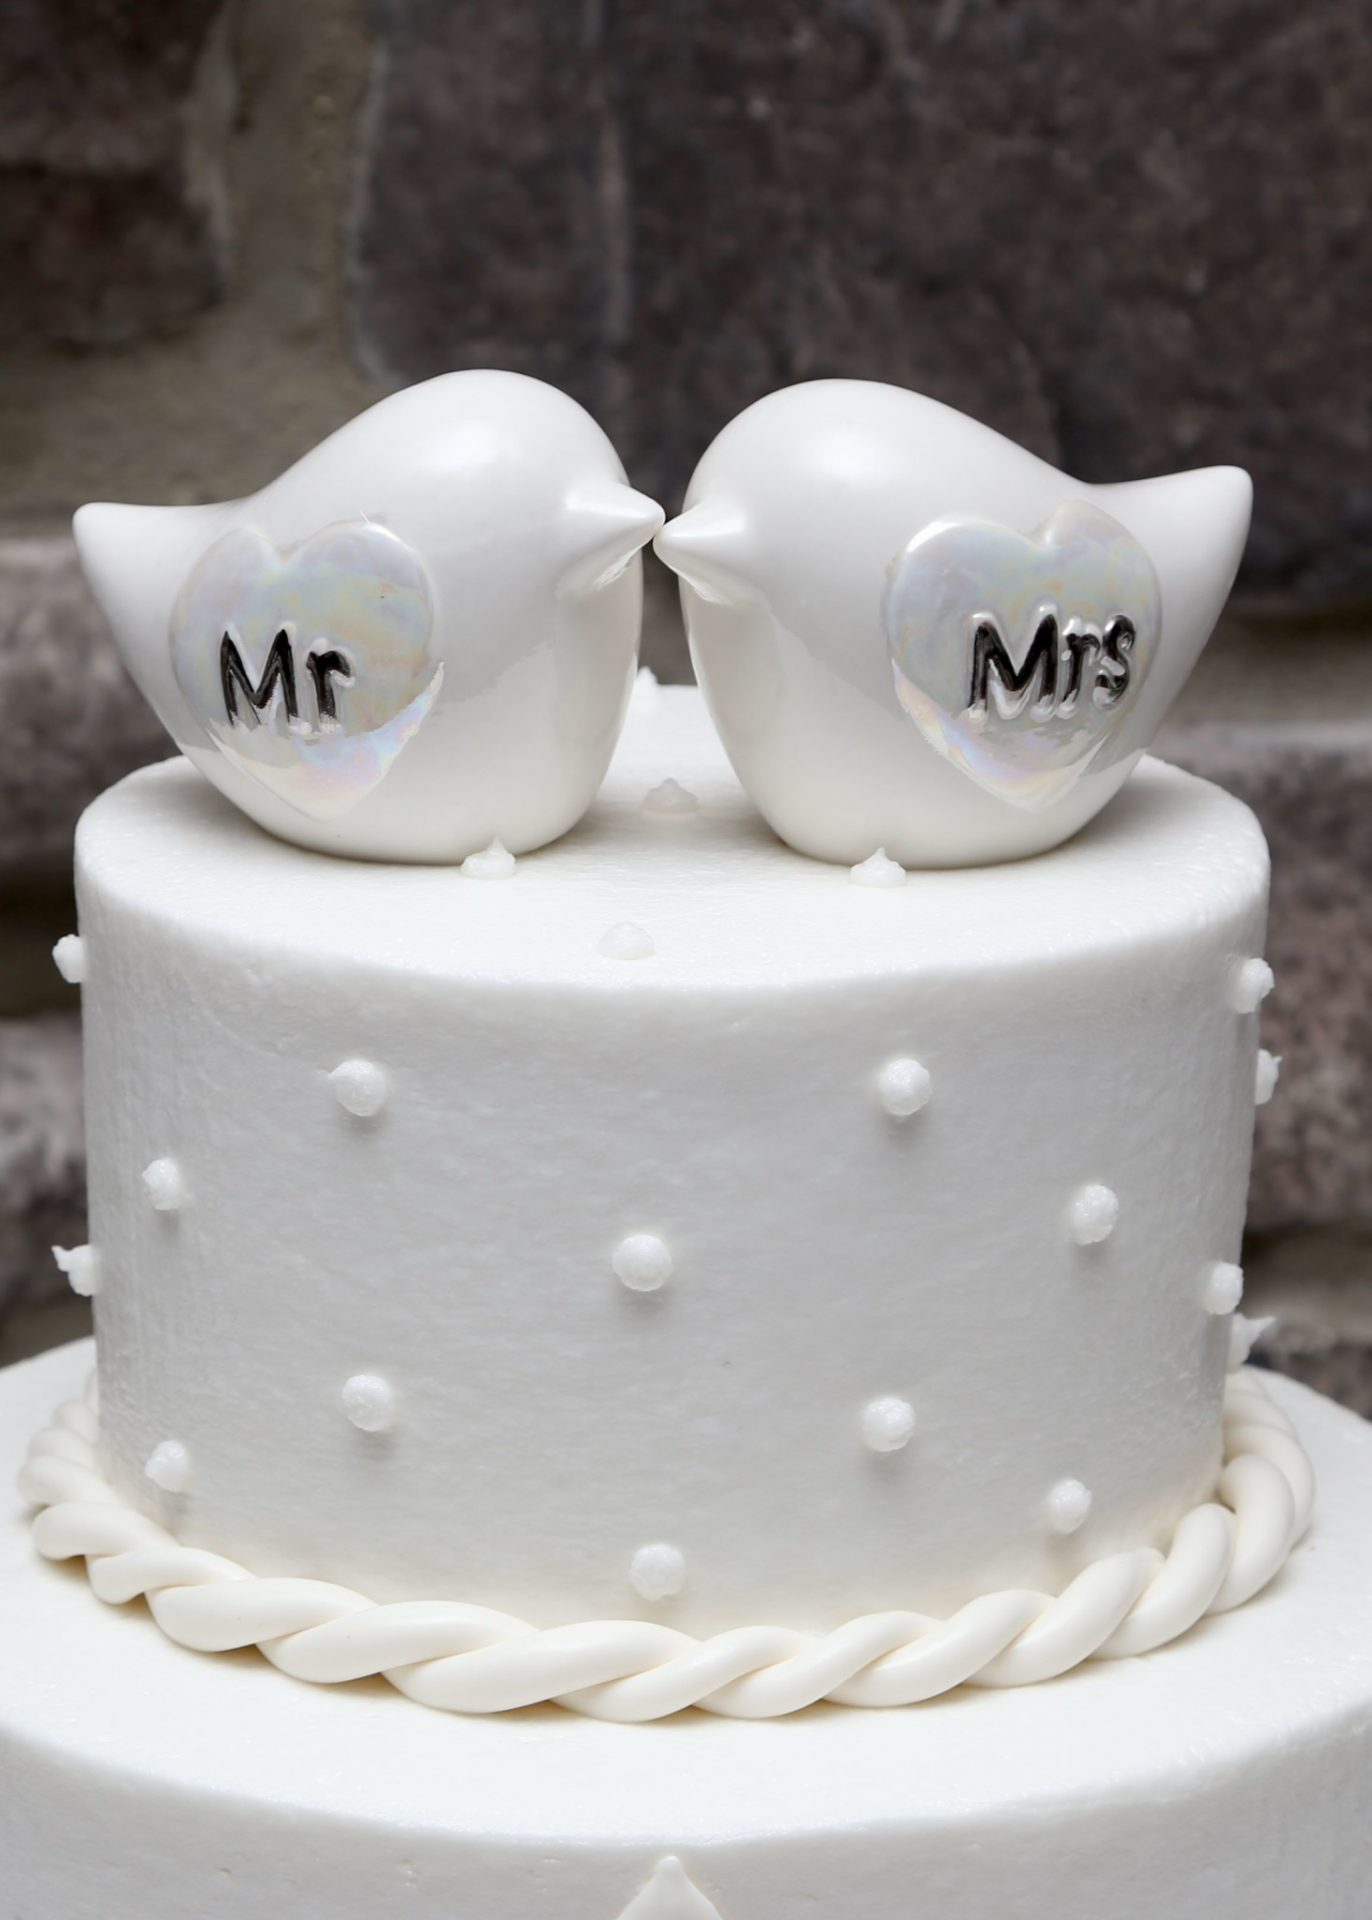 Wedding cake is topped with two white doves labeled with MR andMRS